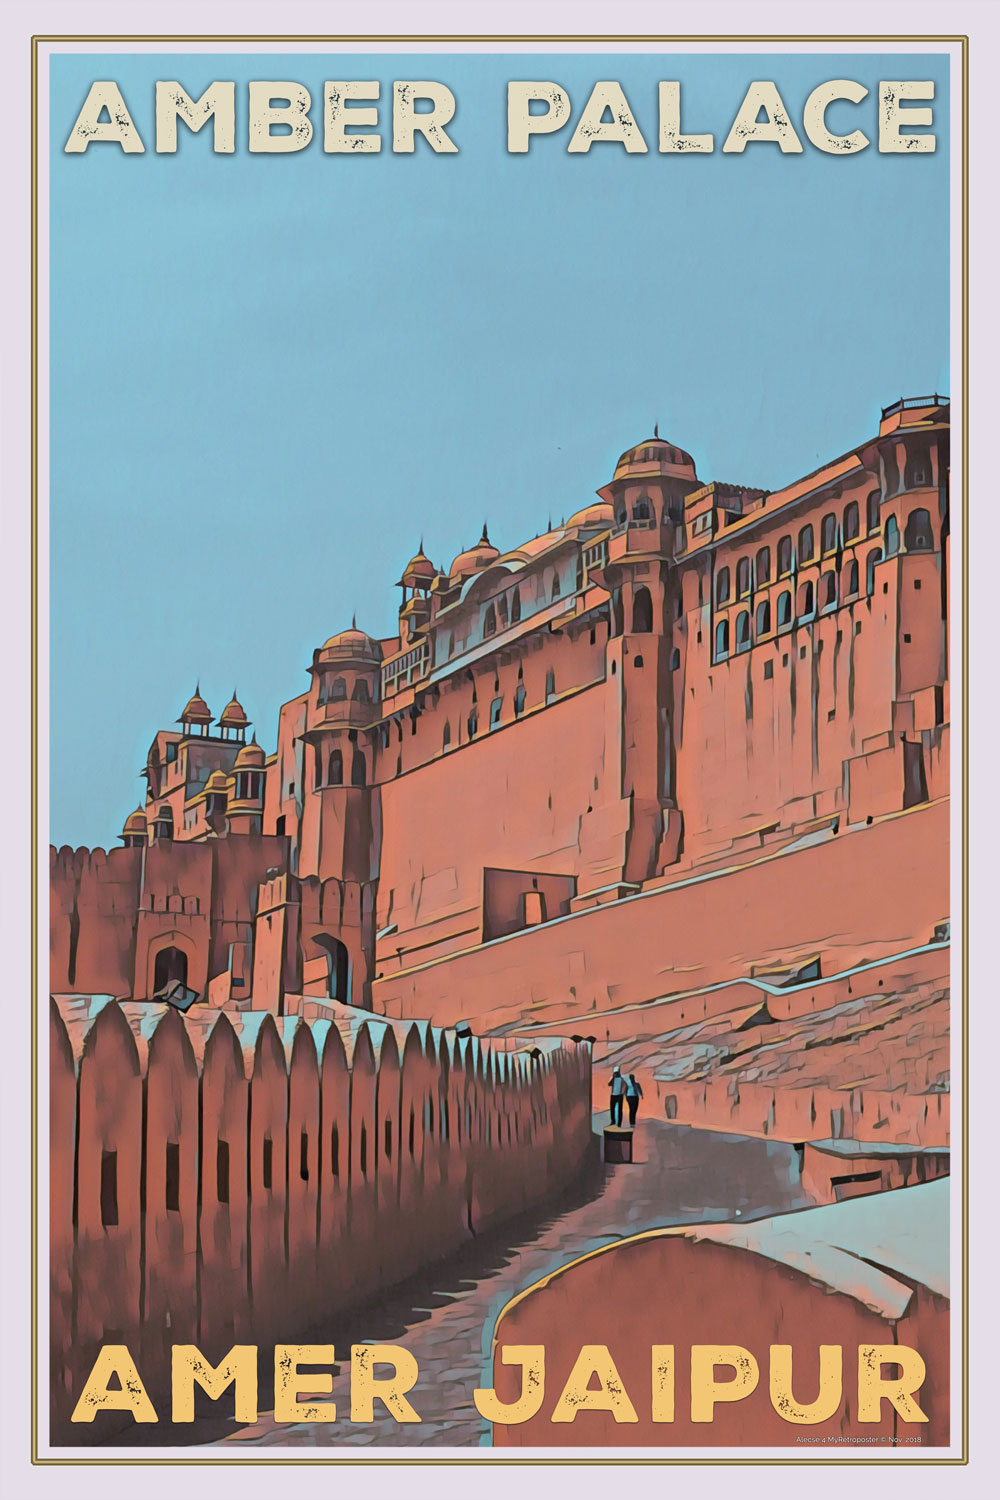 Affiche ancienne - Amber Palace Amer Jaipur - Affiche retro